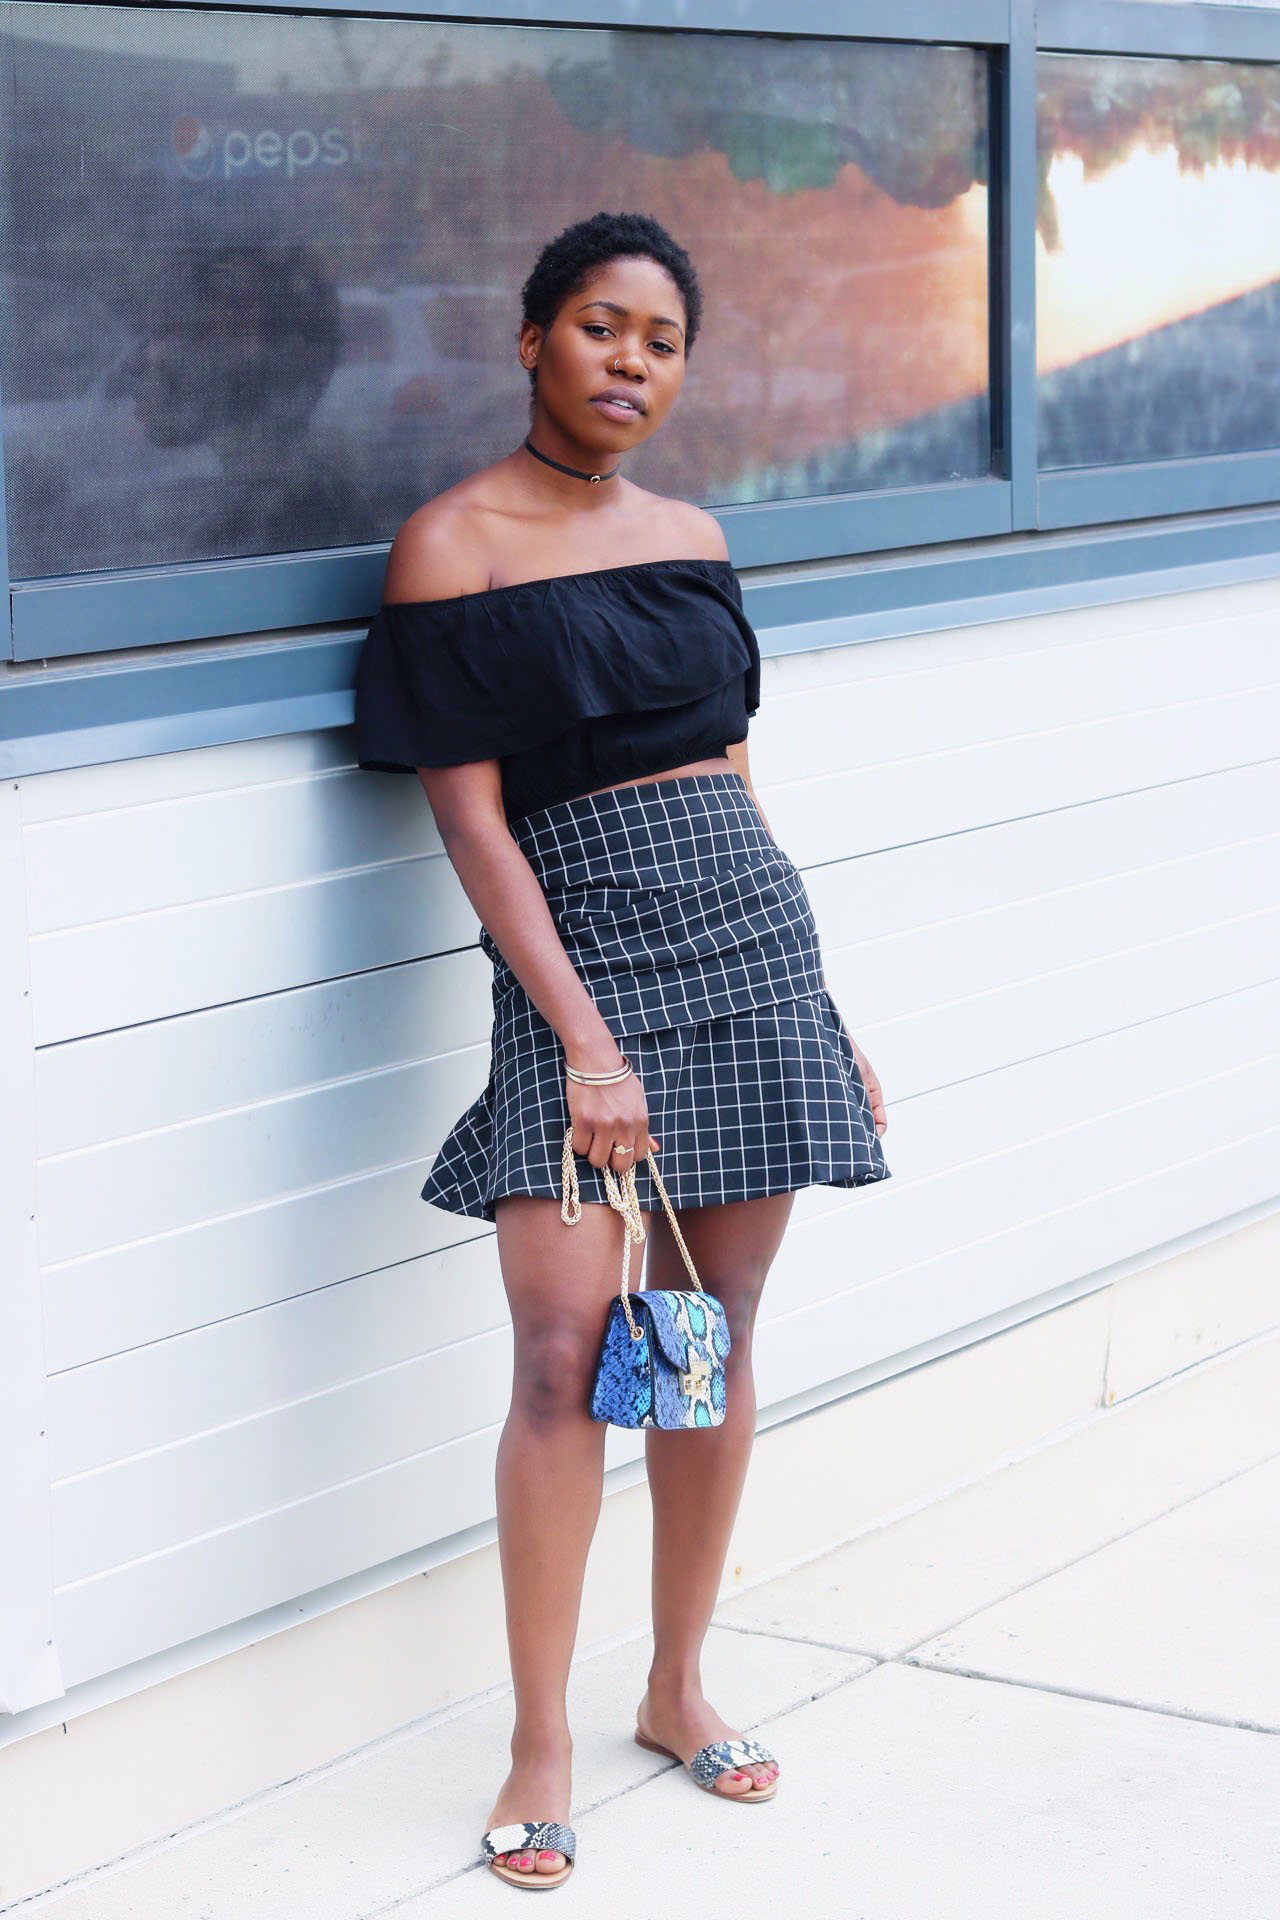 style-synopsis-off-shoulder-top-check-flared-skirt-summer-look.